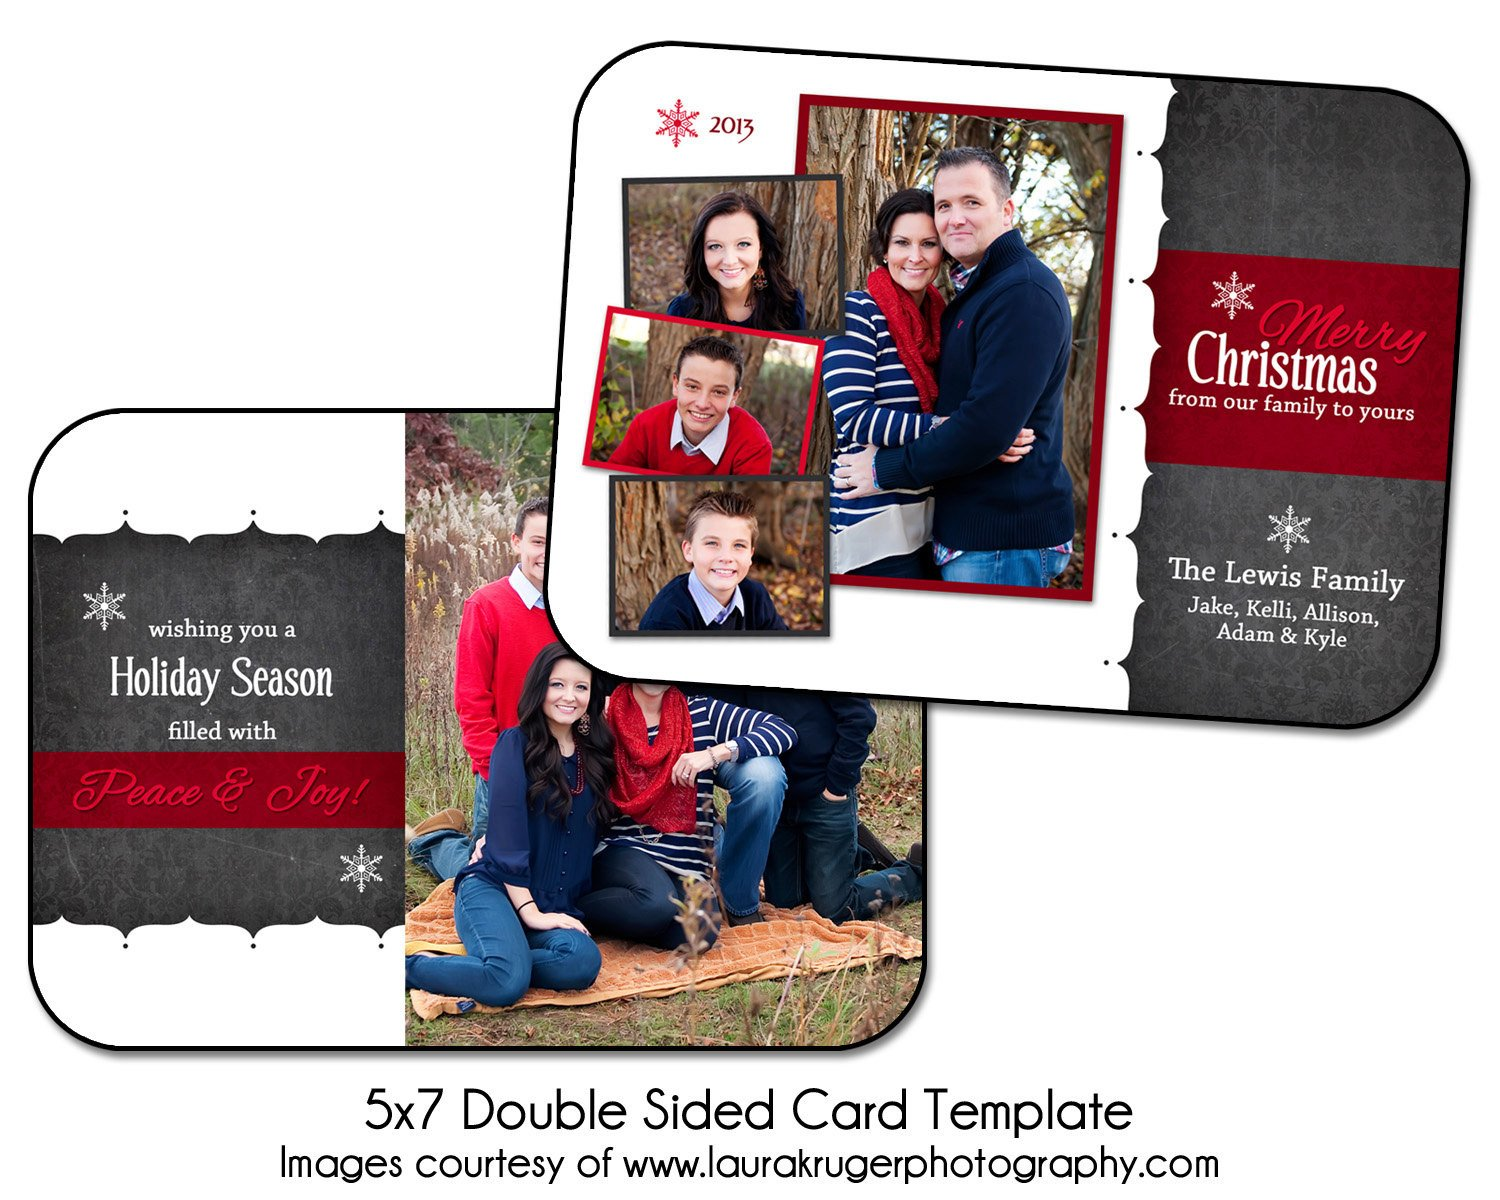 Two Sided Postcard Template Christmas Card Template Holiday Chalk 5x7 Double Sided